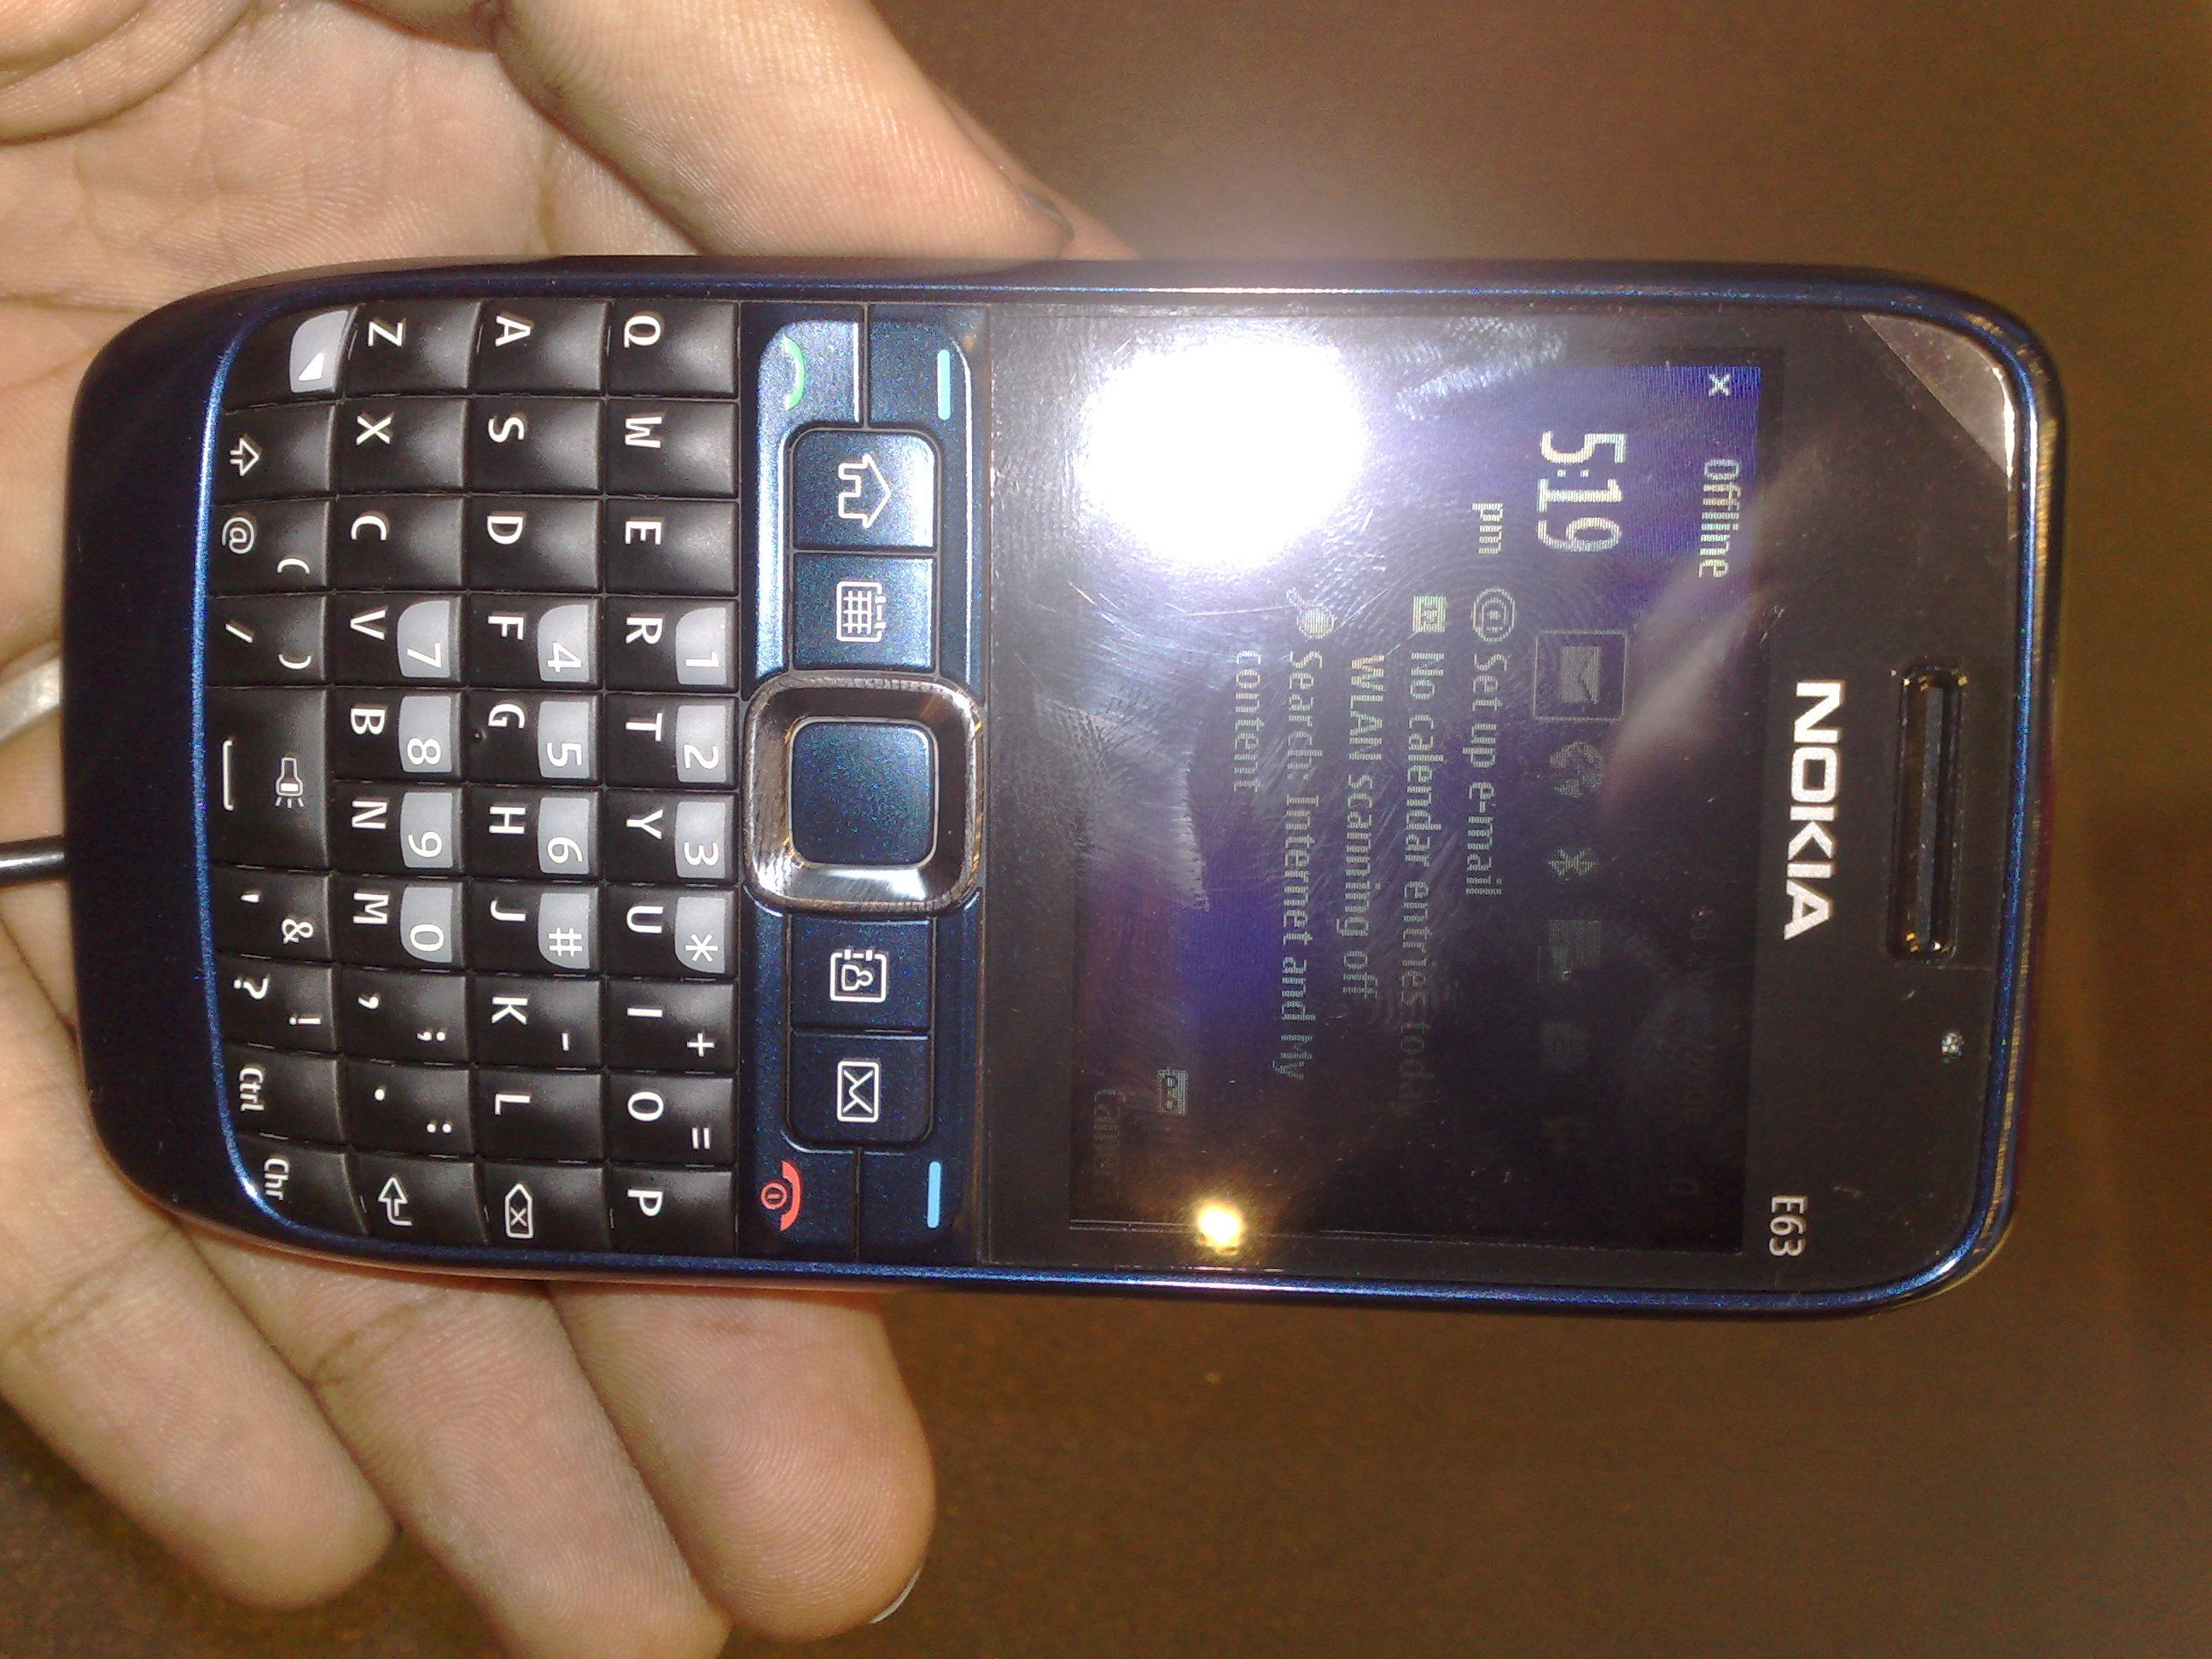 total recall free download for nokia e5